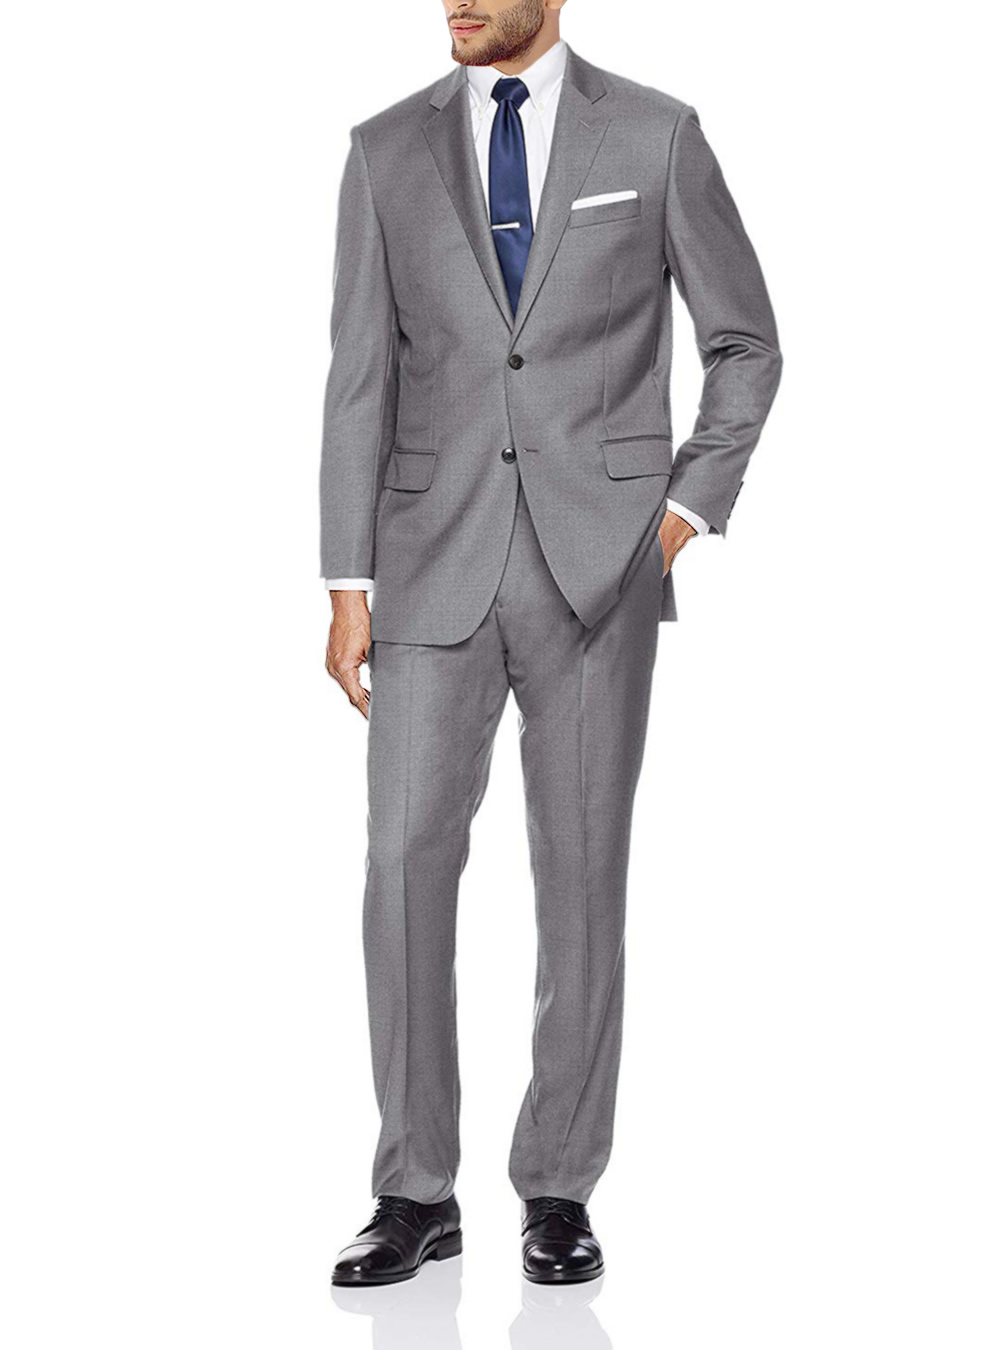 napoli single men A group of men's isaia napoli suits and a blazer the off white woven cotton blazer features a notched lapel collar, single breasted double button closure, a single breast pocket, flap pockets and button cuffs the grey plaid suit is comprised of a blazer with a notched lapel collar, single.